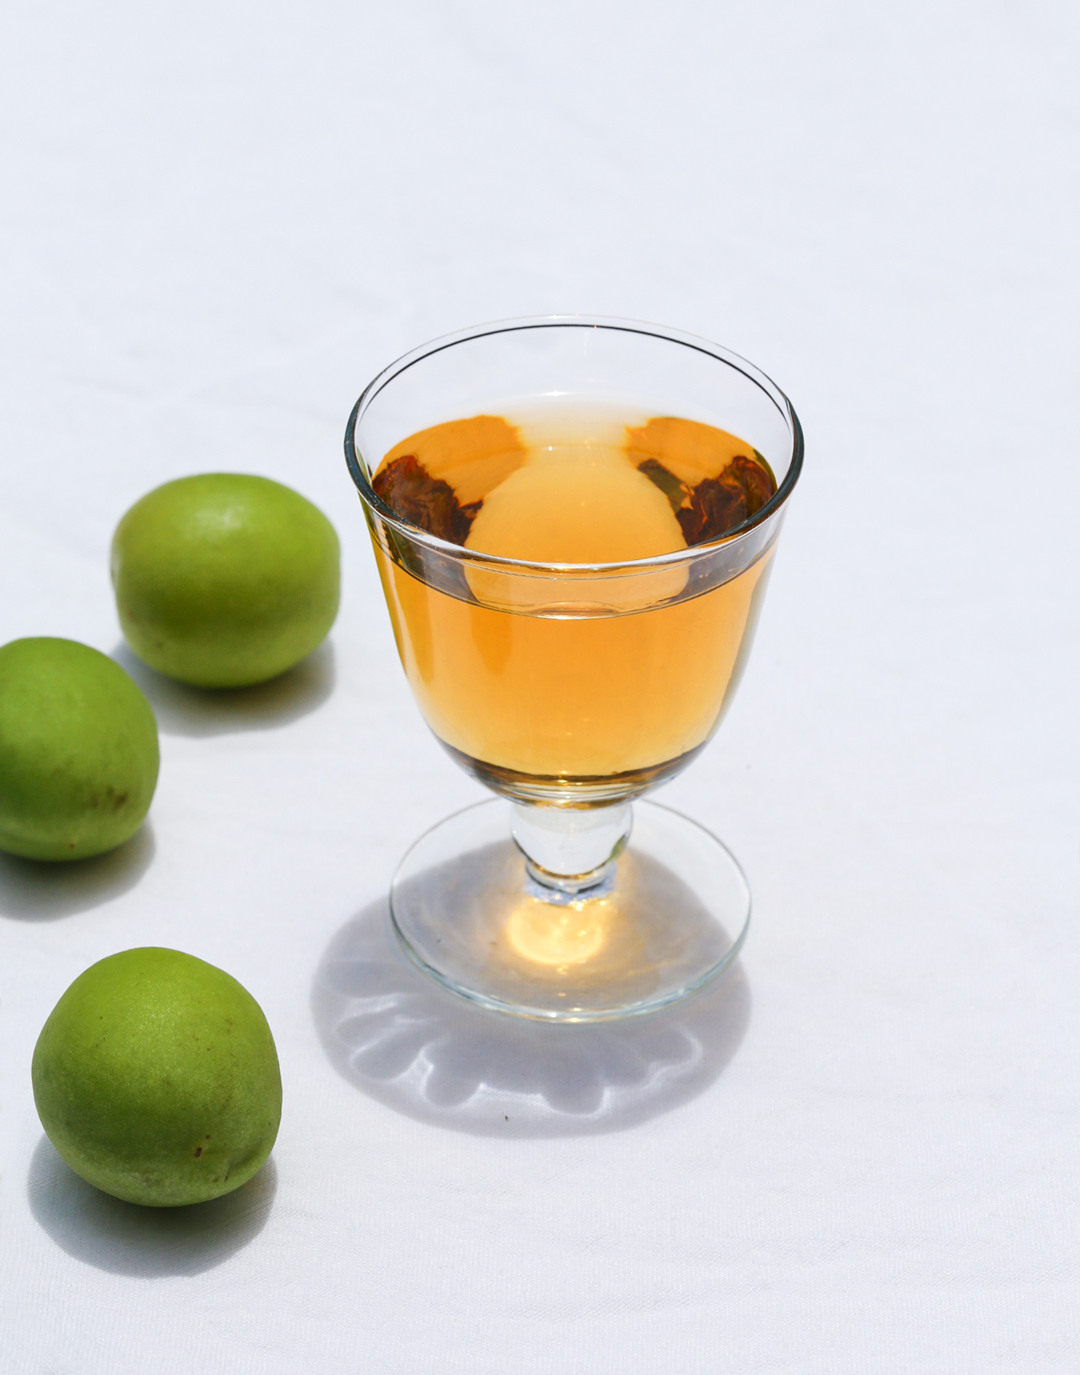 How to make Japanese plum wine (Umeshu)